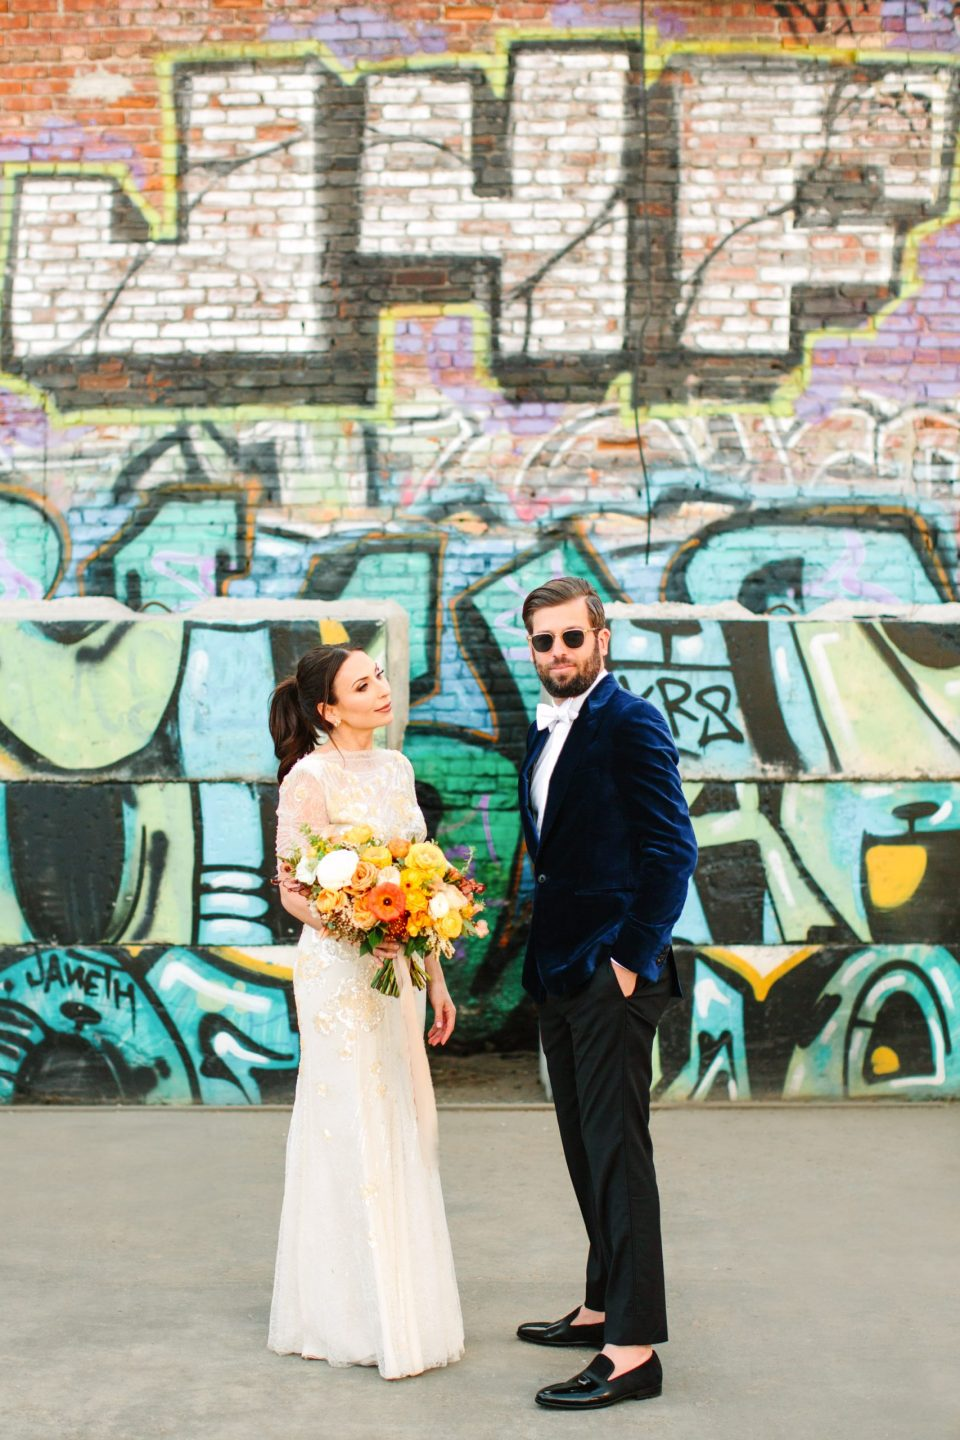 Bride and groom first look with graffiti backdrop www.marycostaweddings.com